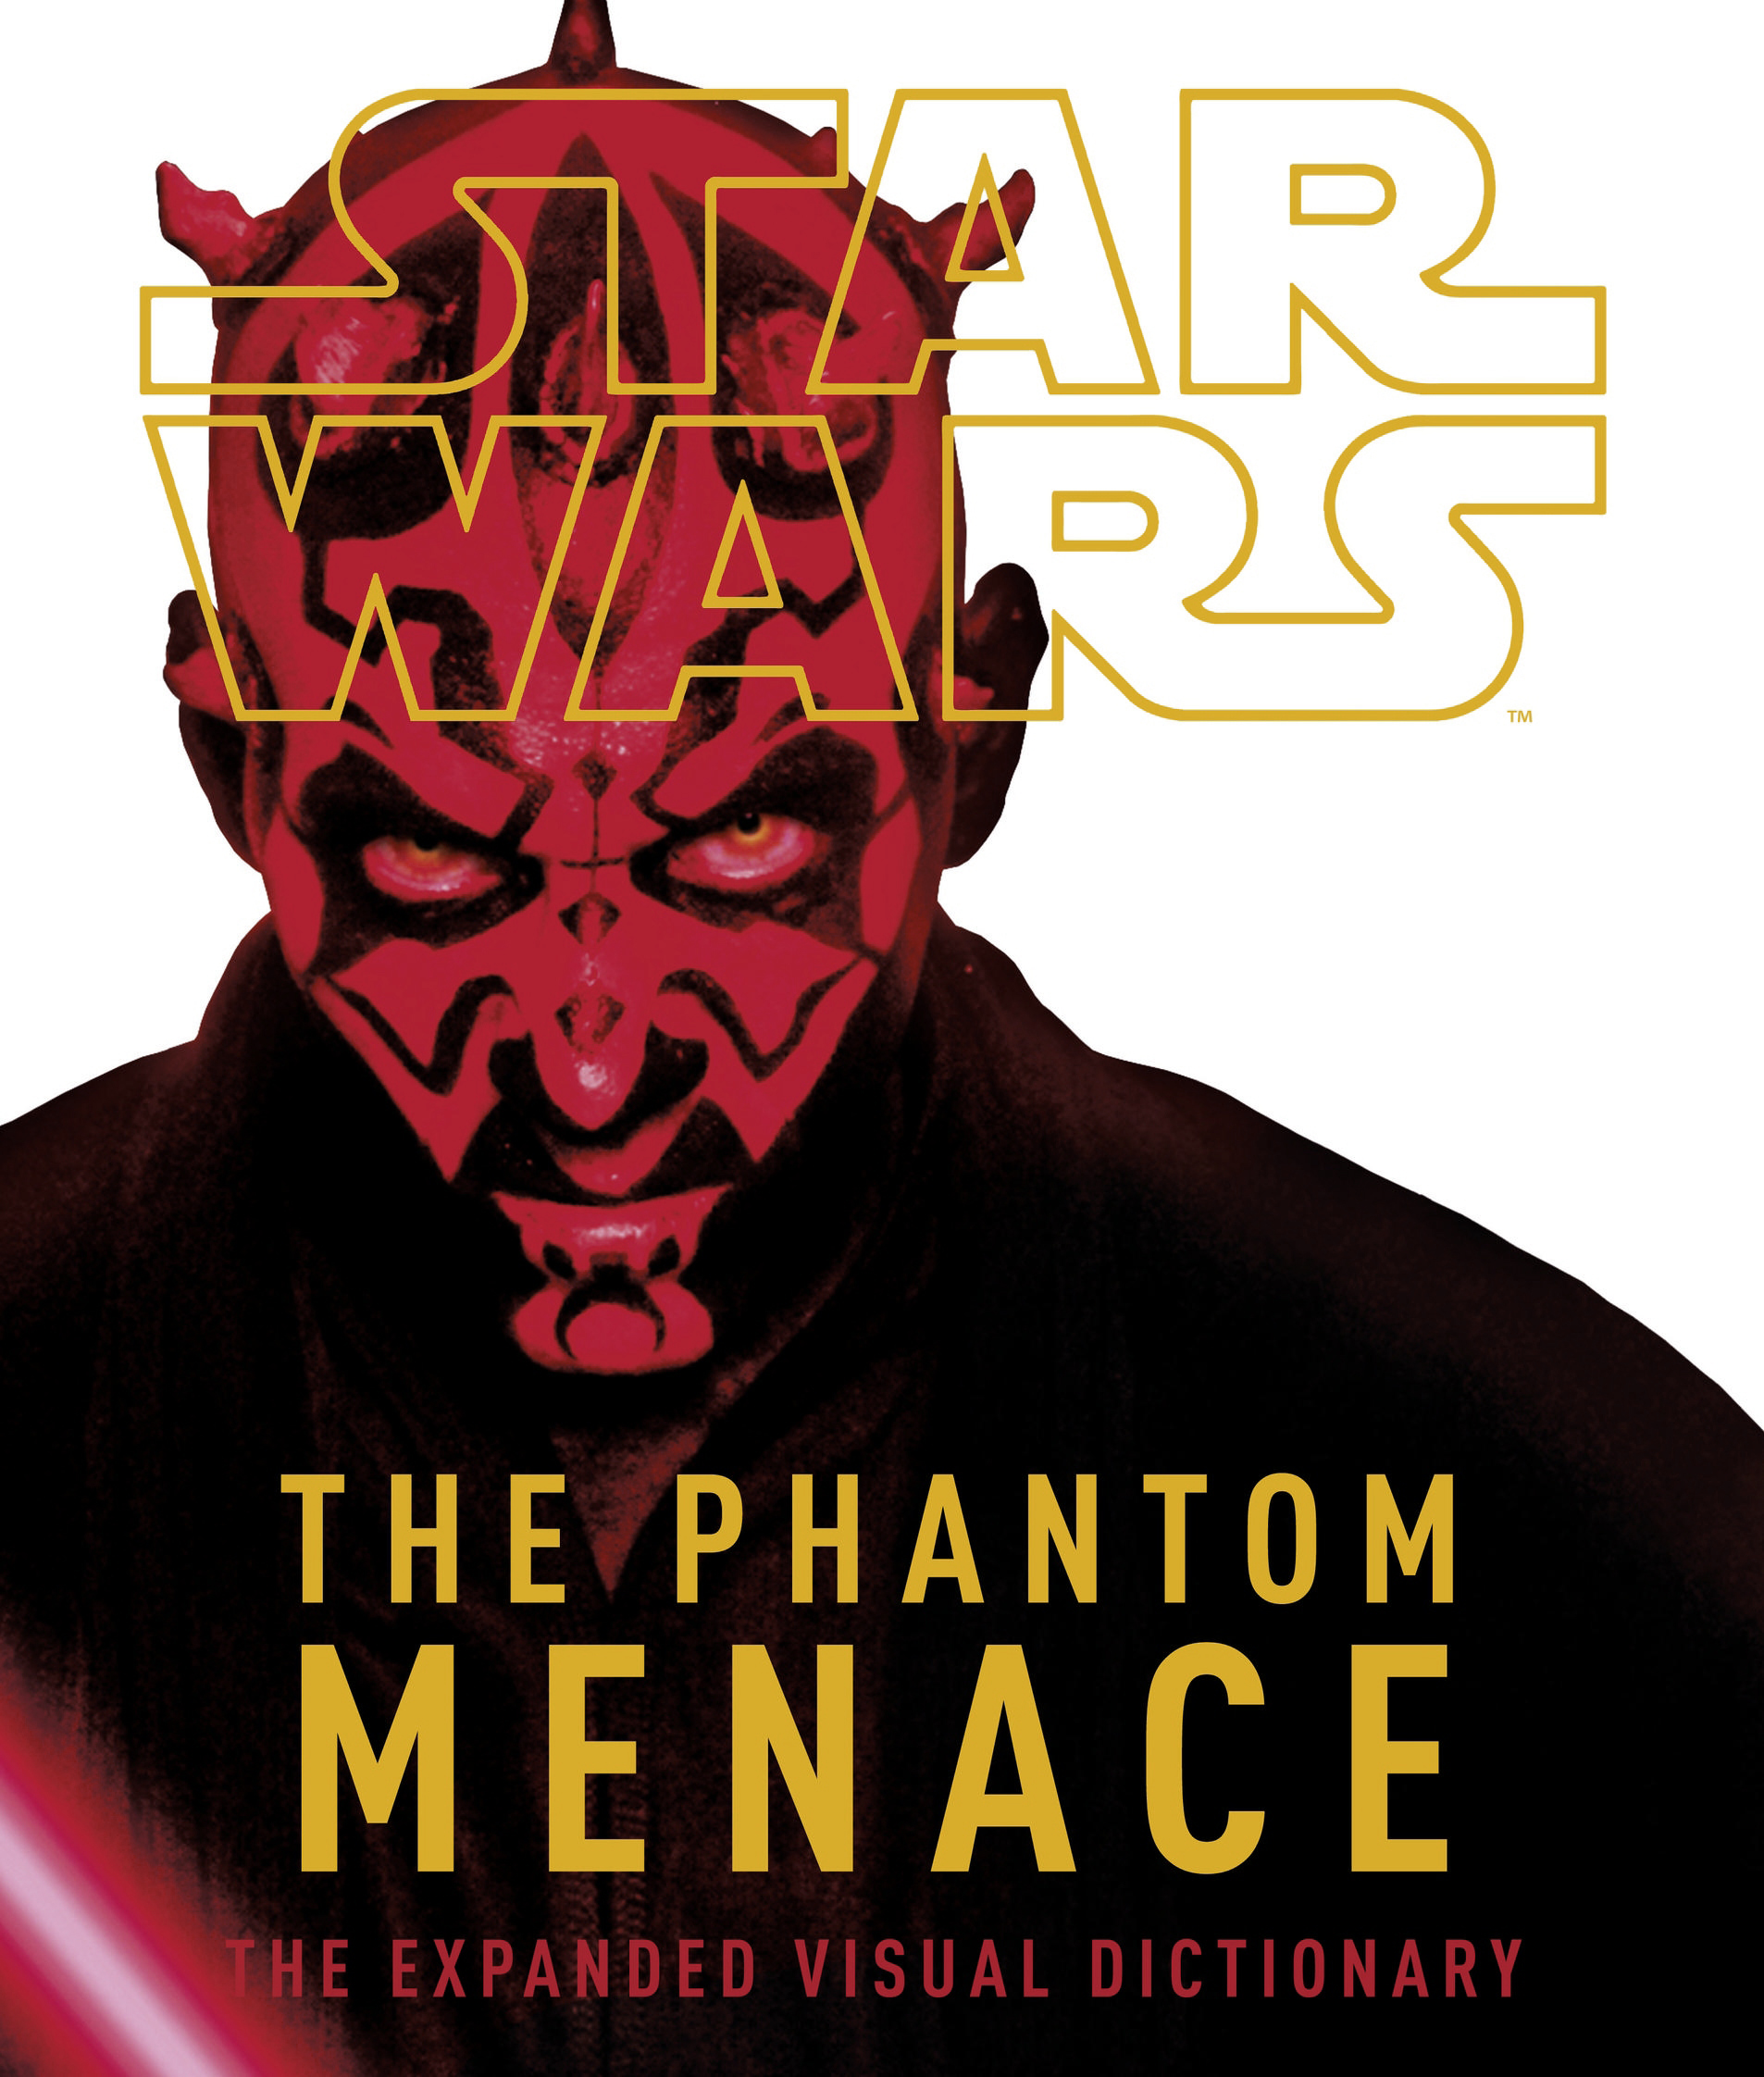 Star Wars Episode I: The Phantom Menace Visual Dictionary Revised and Expanded